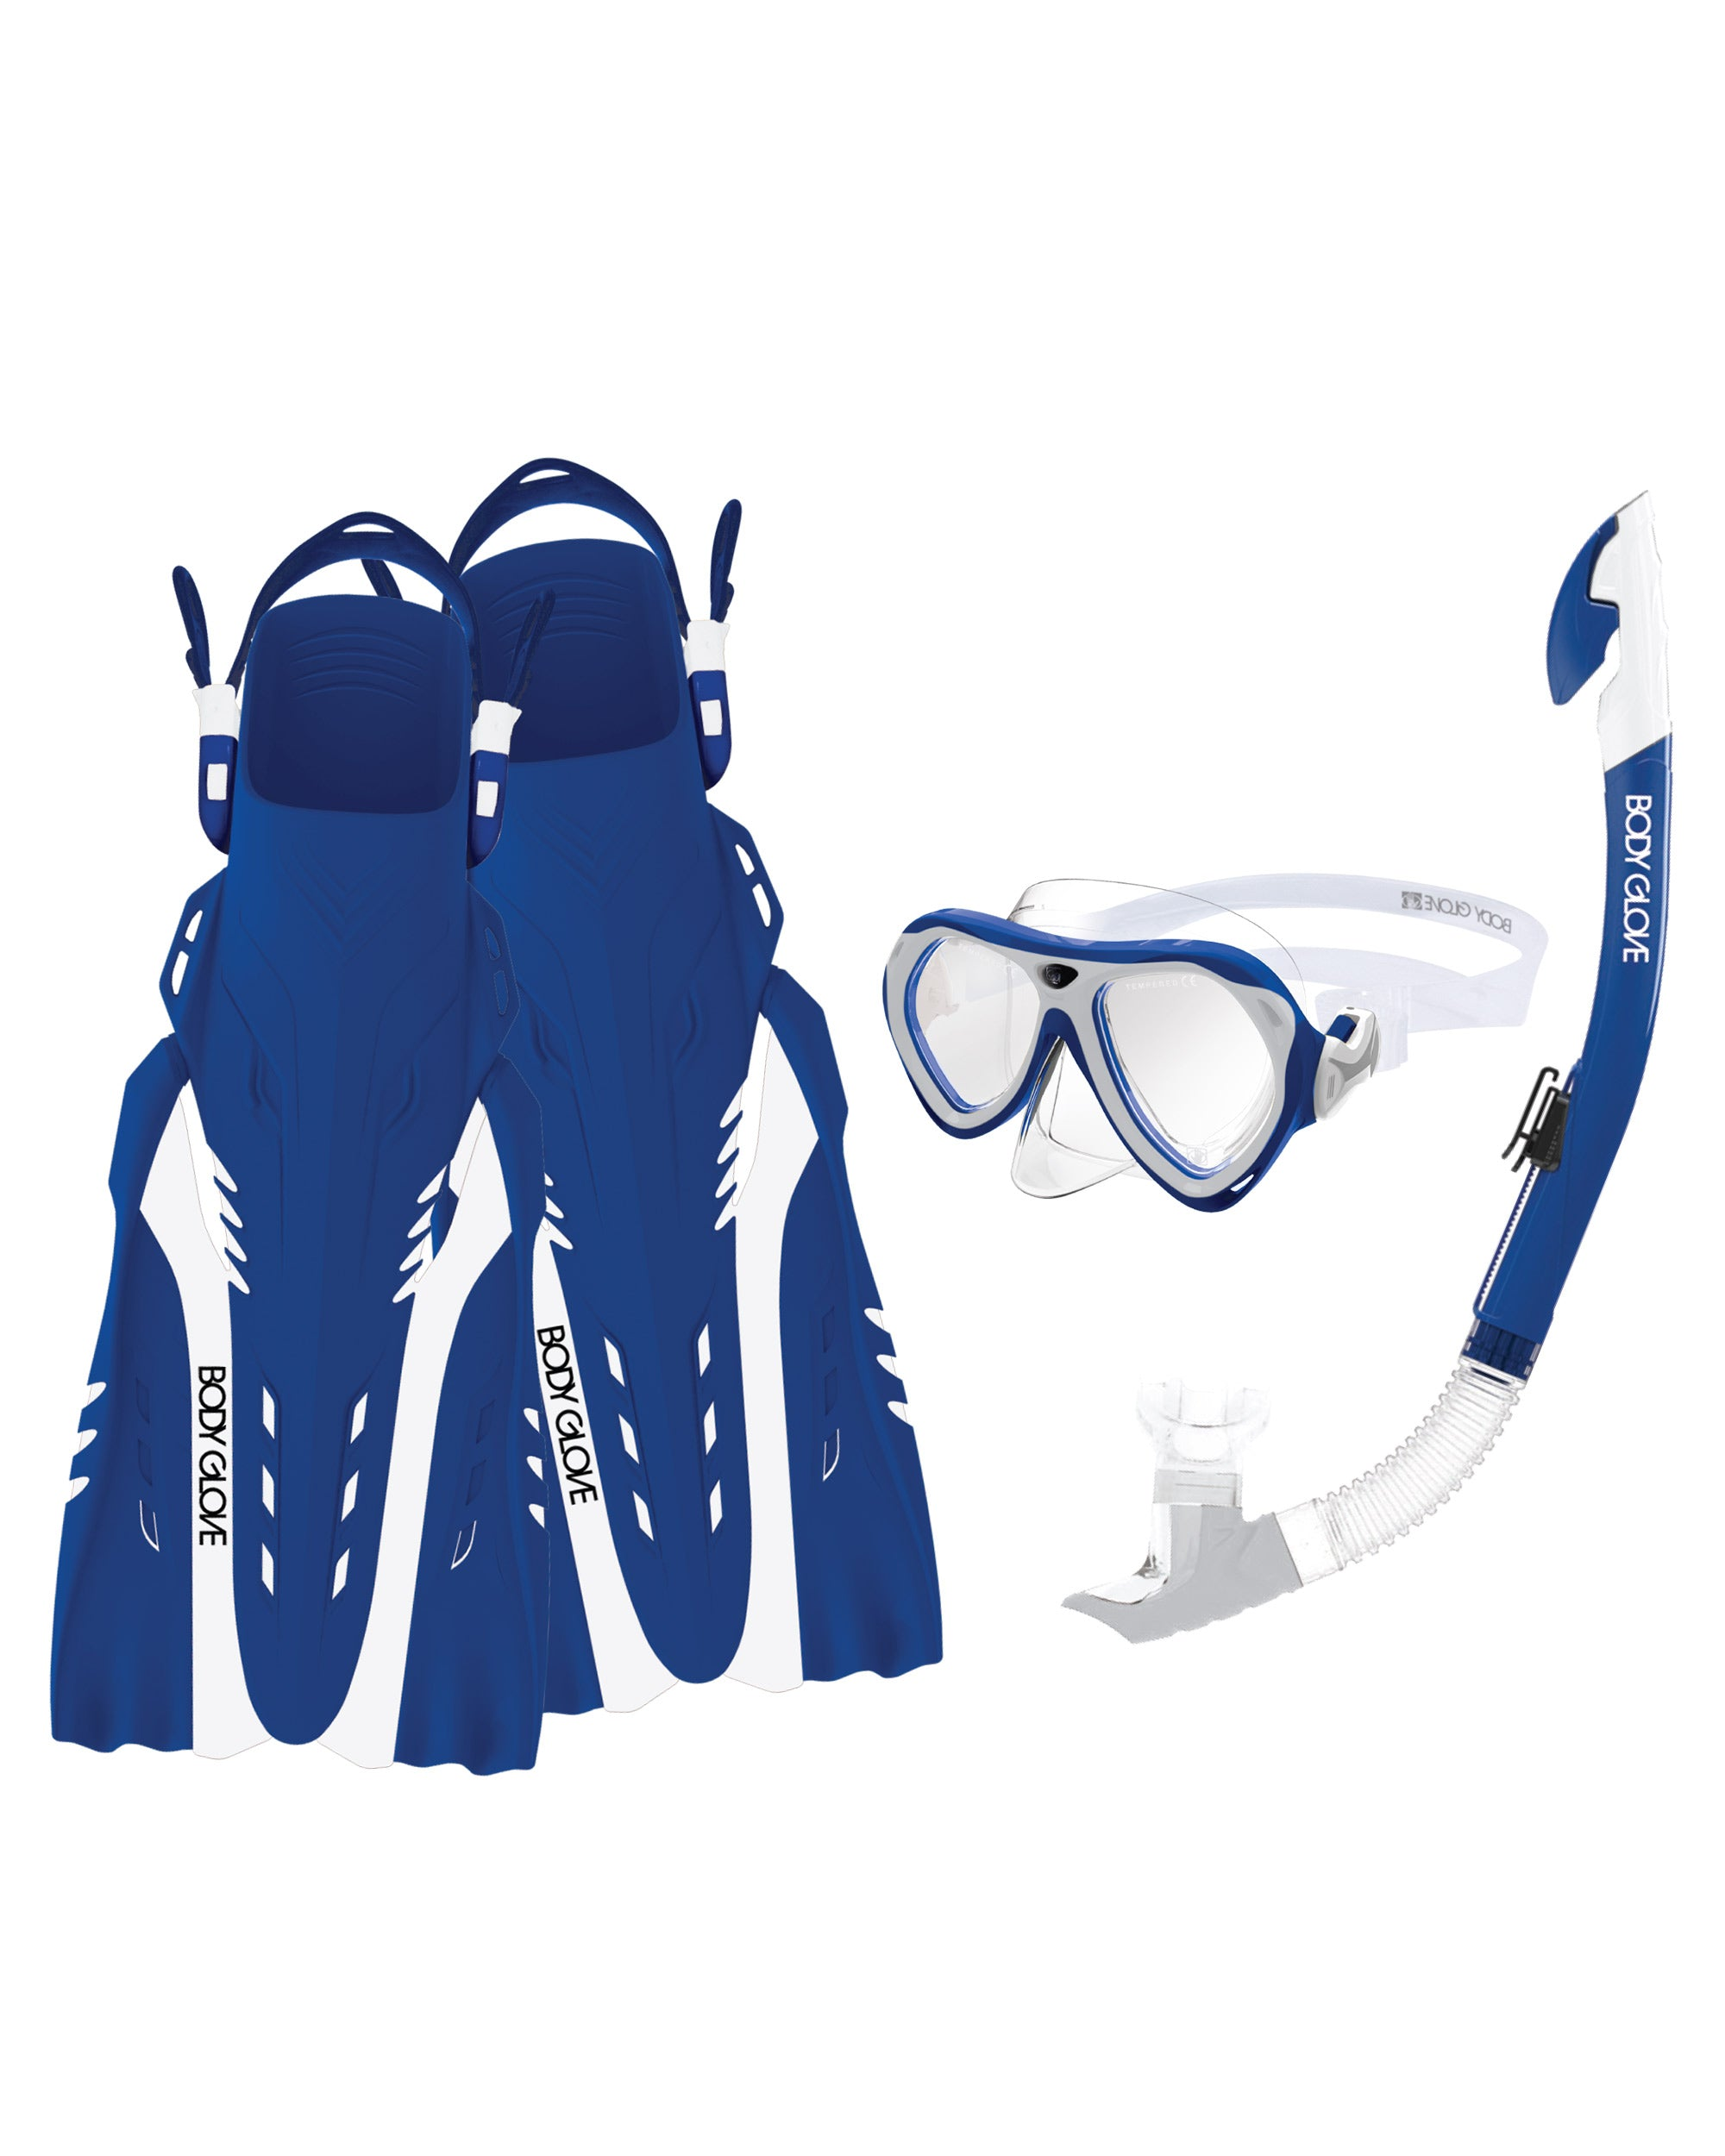 Aruba Women's Mask/Snorkel/Fin Snorkeling Set - Blue/White